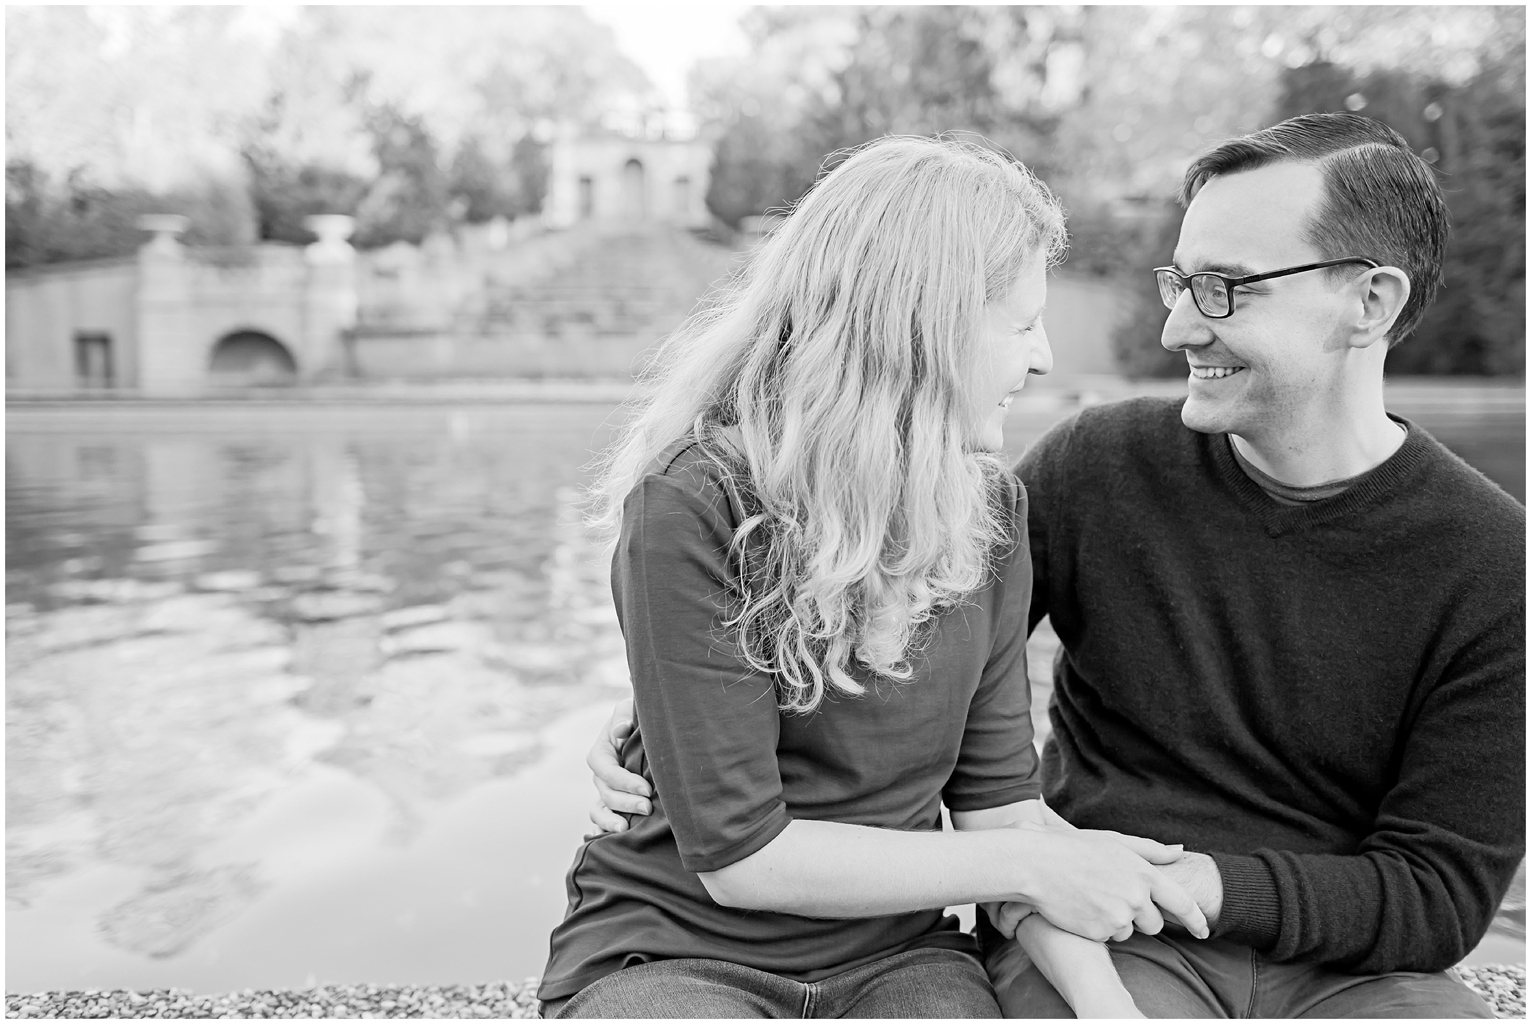 h-street-meridian-hill-washington-dc-engagement-photography-liz-stewart-photo-00012